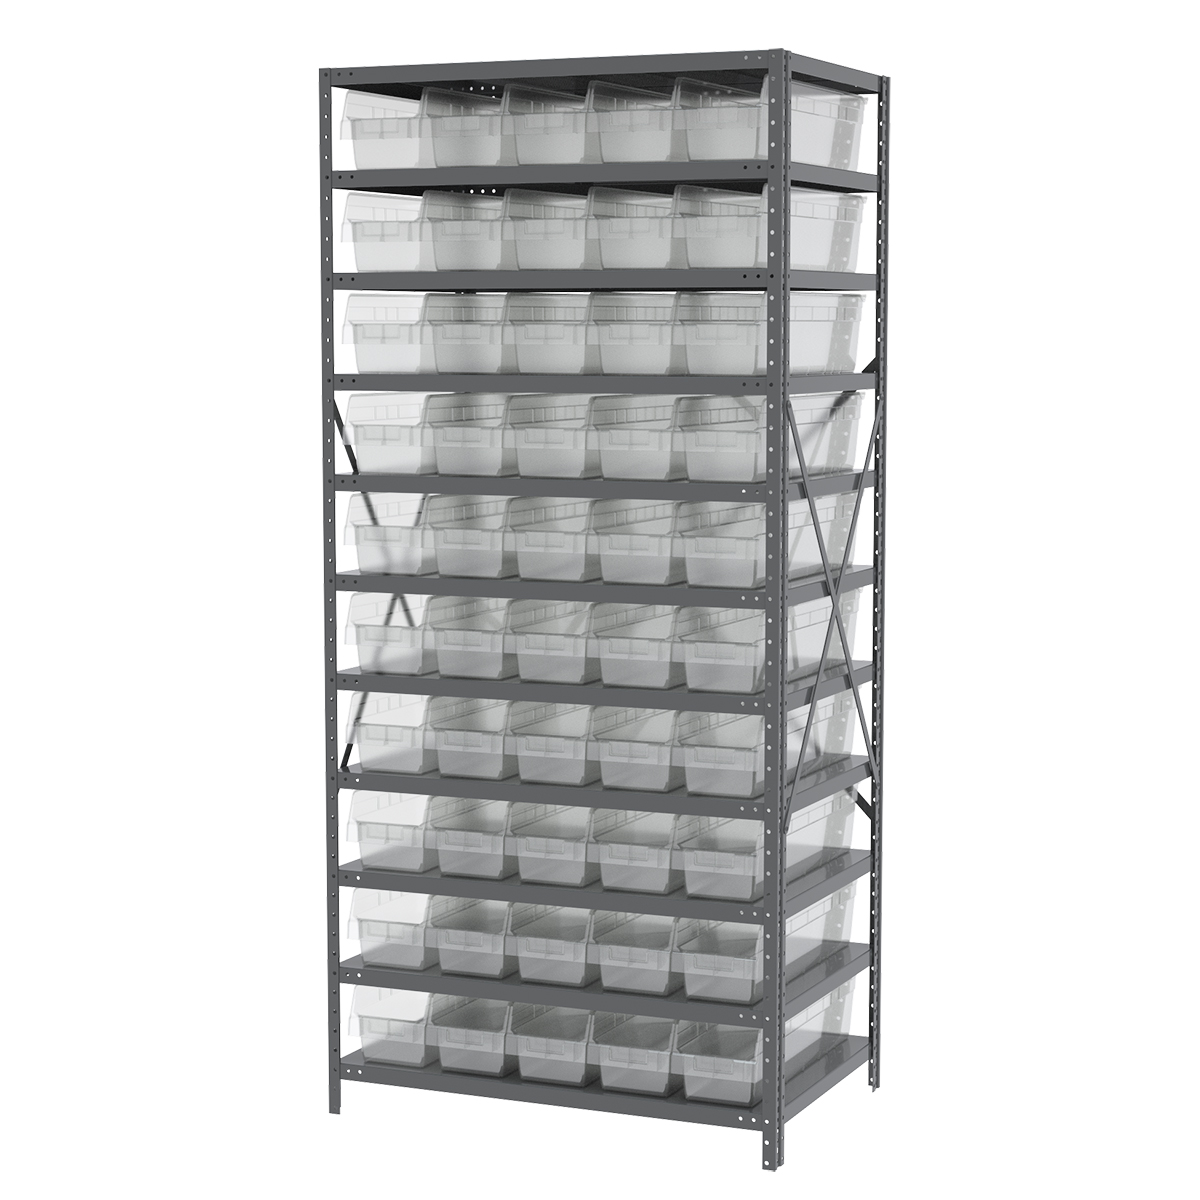 Steel Shelving Kit, 24x36x79, 50 Bins, Gray/Clear.  This item sold in carton quantities of 1.